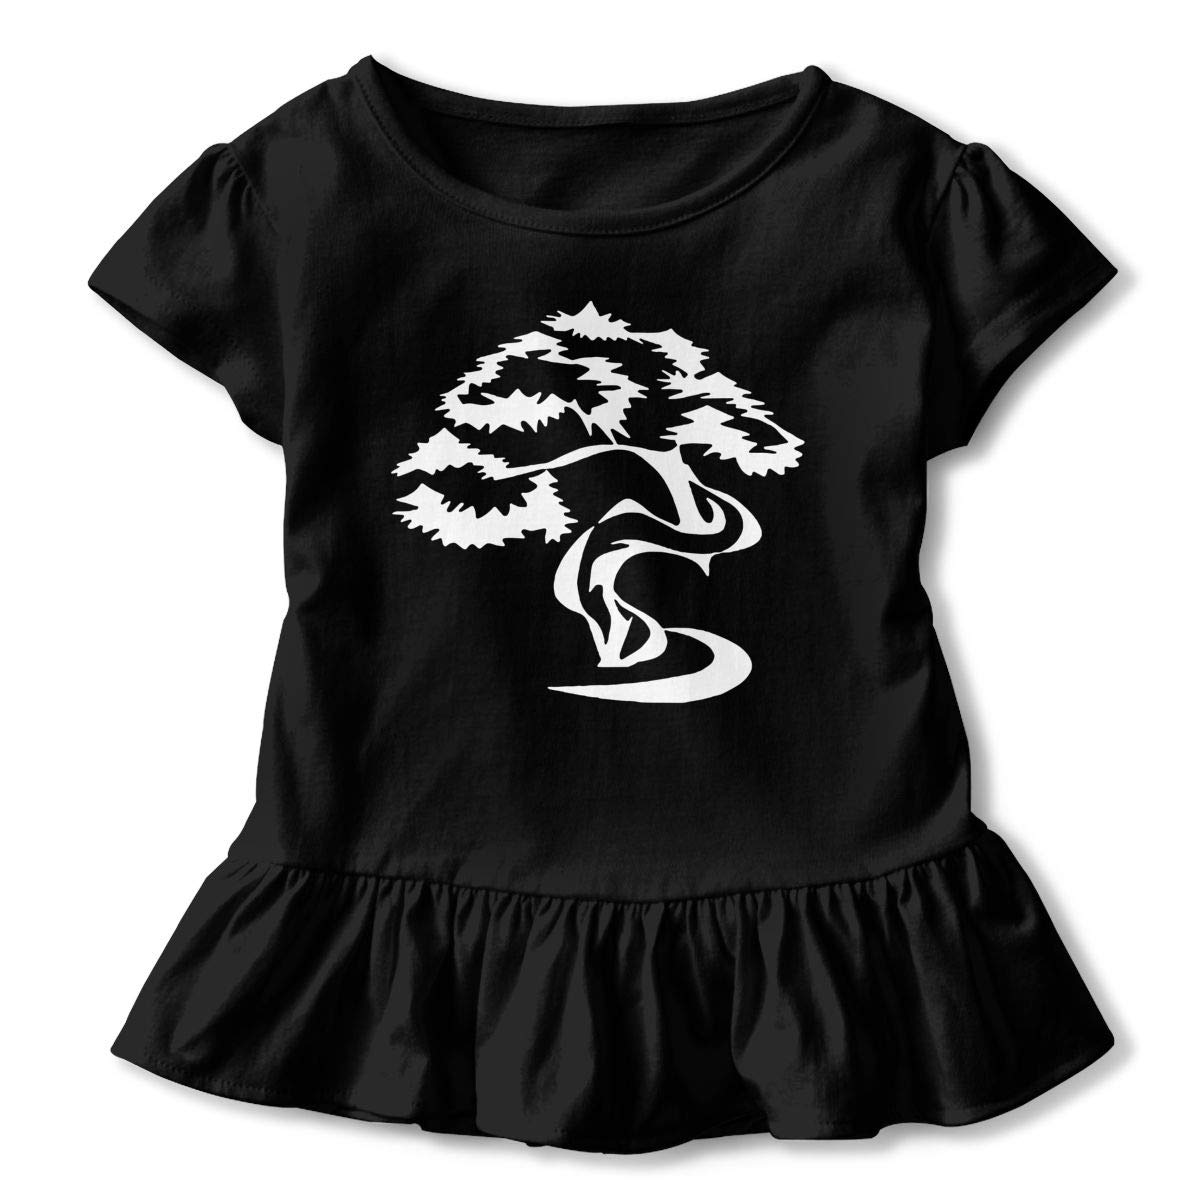 Zi7J9q-0 Short Sleeve Bonsai Tree Shirts for Kids Casual Blouse Clothes with Falbala 2-6T